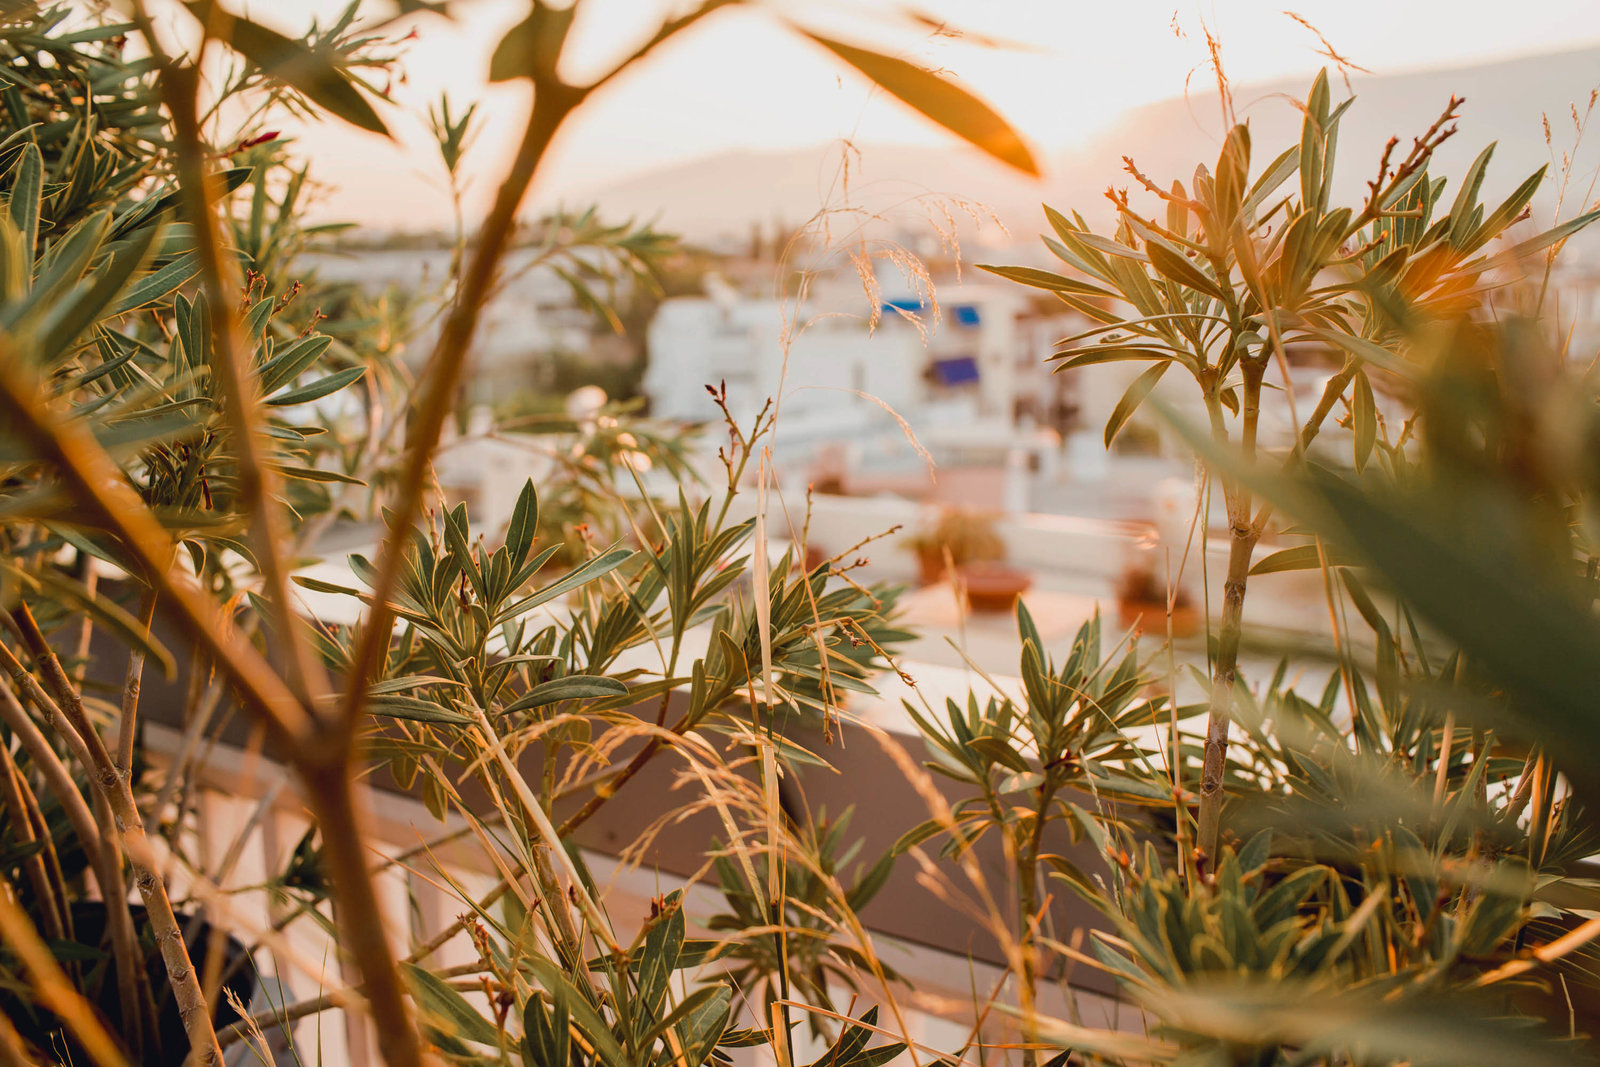 sunrise-plants-athens-greece-travel-kate-timbers-photography-863